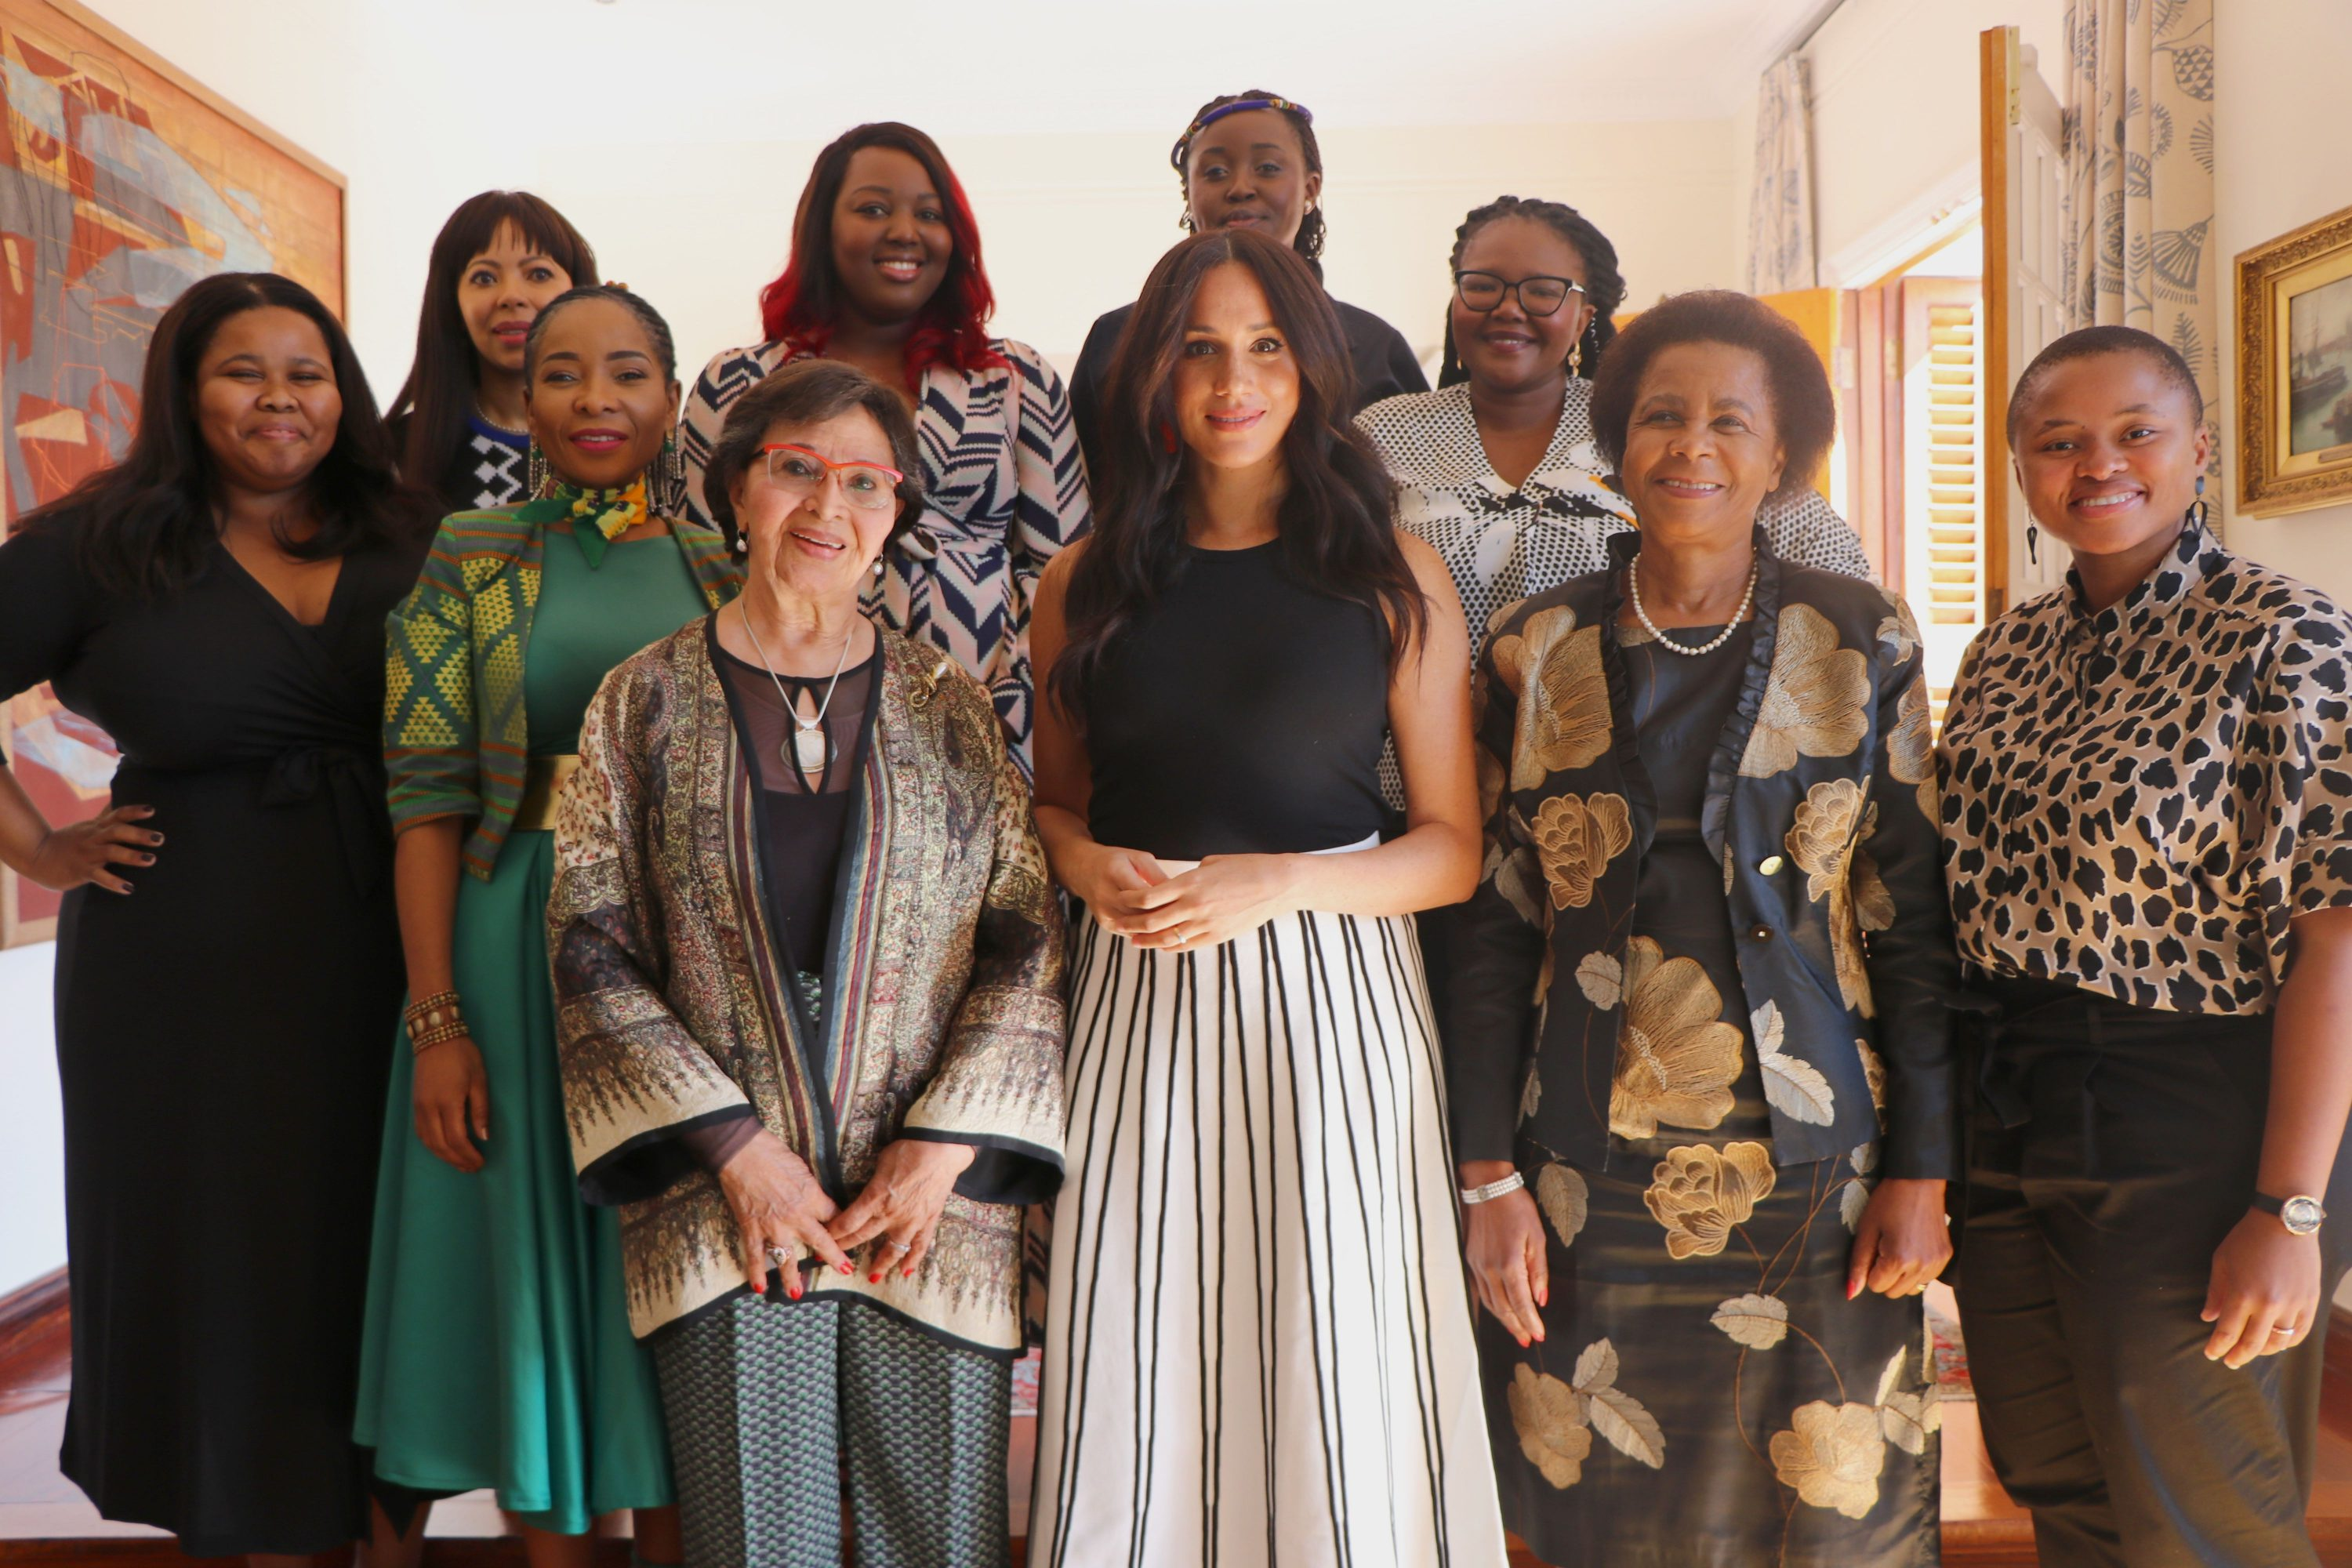 Duchess Meghan Praises Activists During South Africa Trip: 'I Hope Their Voices Will Resonate'